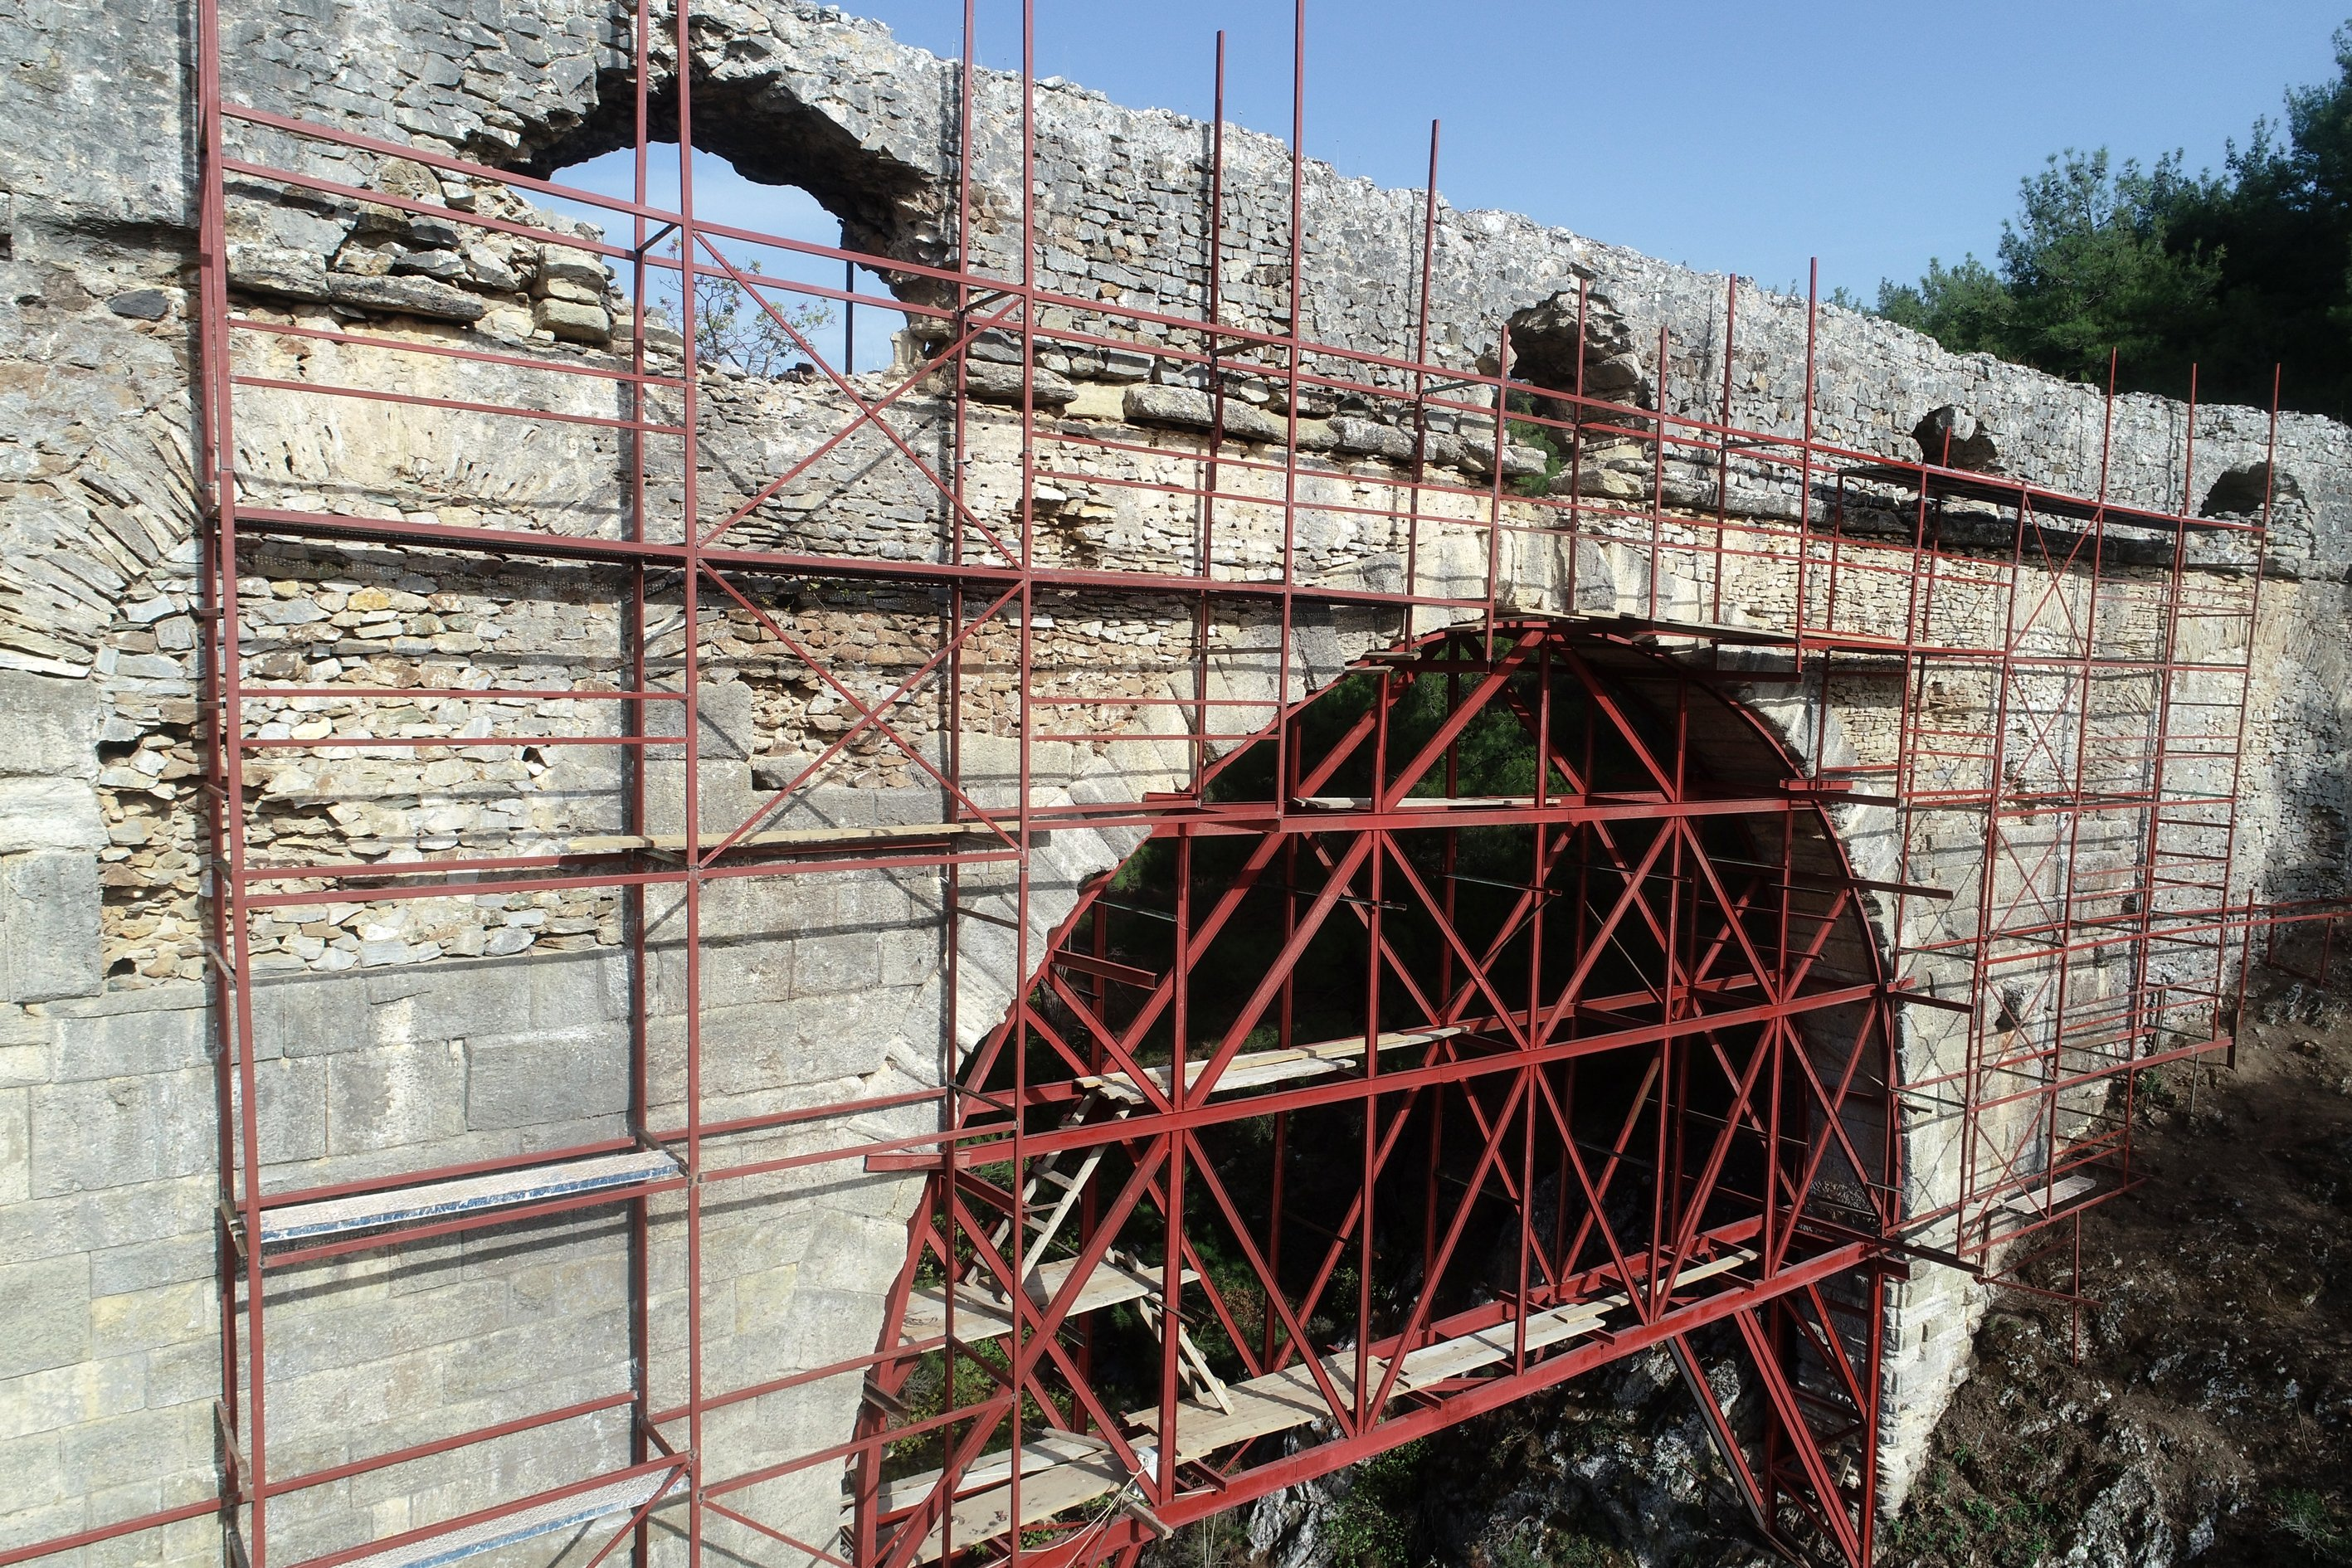 Missing and damaged parts of the aqueduct are being repaired and rebuilt while staying faithful to the original structure, Jan. 7, 2021. (AA Photo)